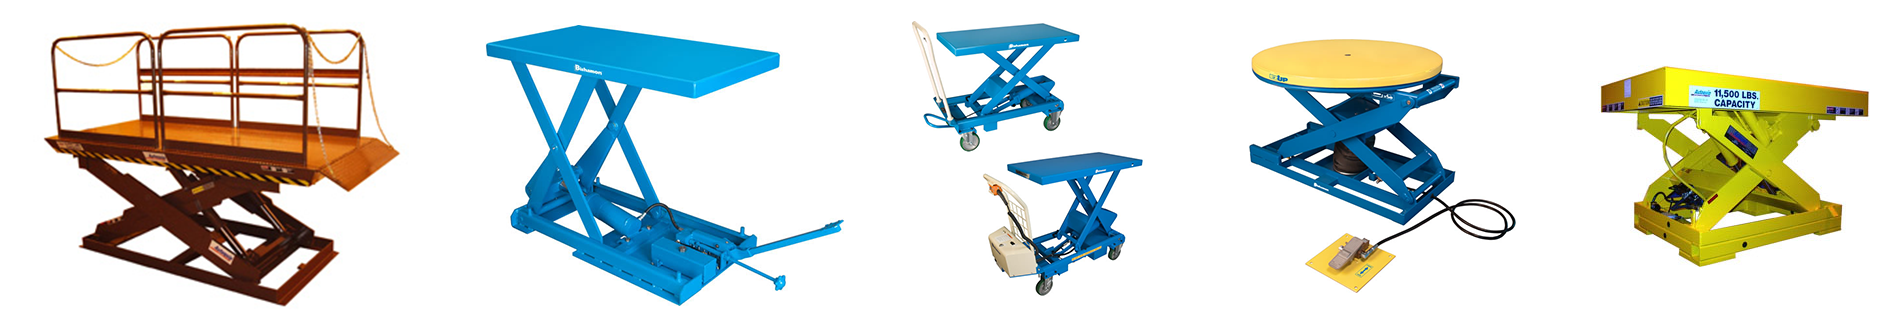 Hydraulic Lift Manufacturers banner